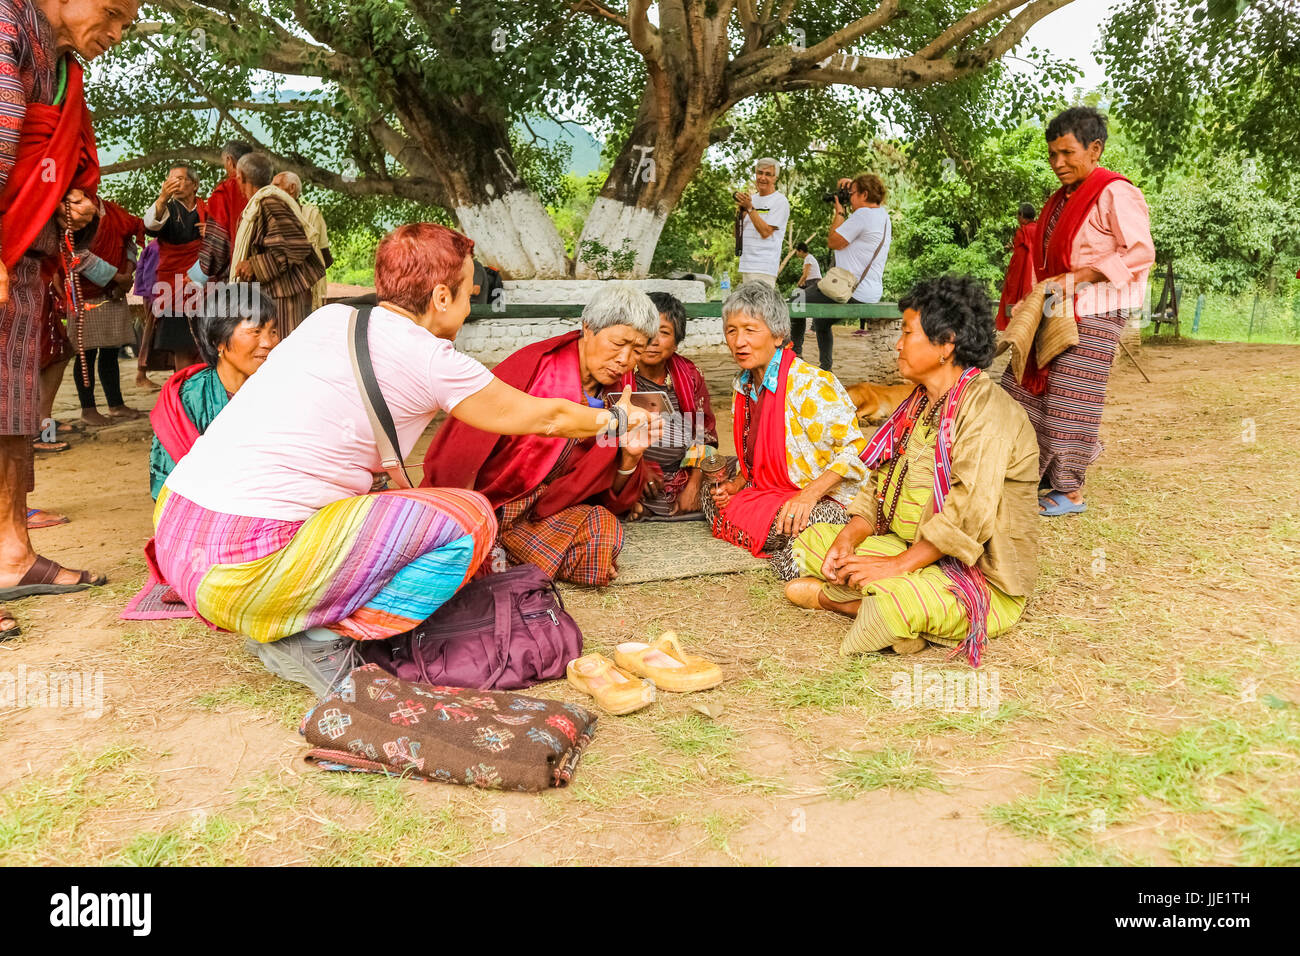 Thimphu, Bhutan - September 15, 2016: Caucasian woman showing pictures on her mobile to Bhutanese people in traditional - Stock Image